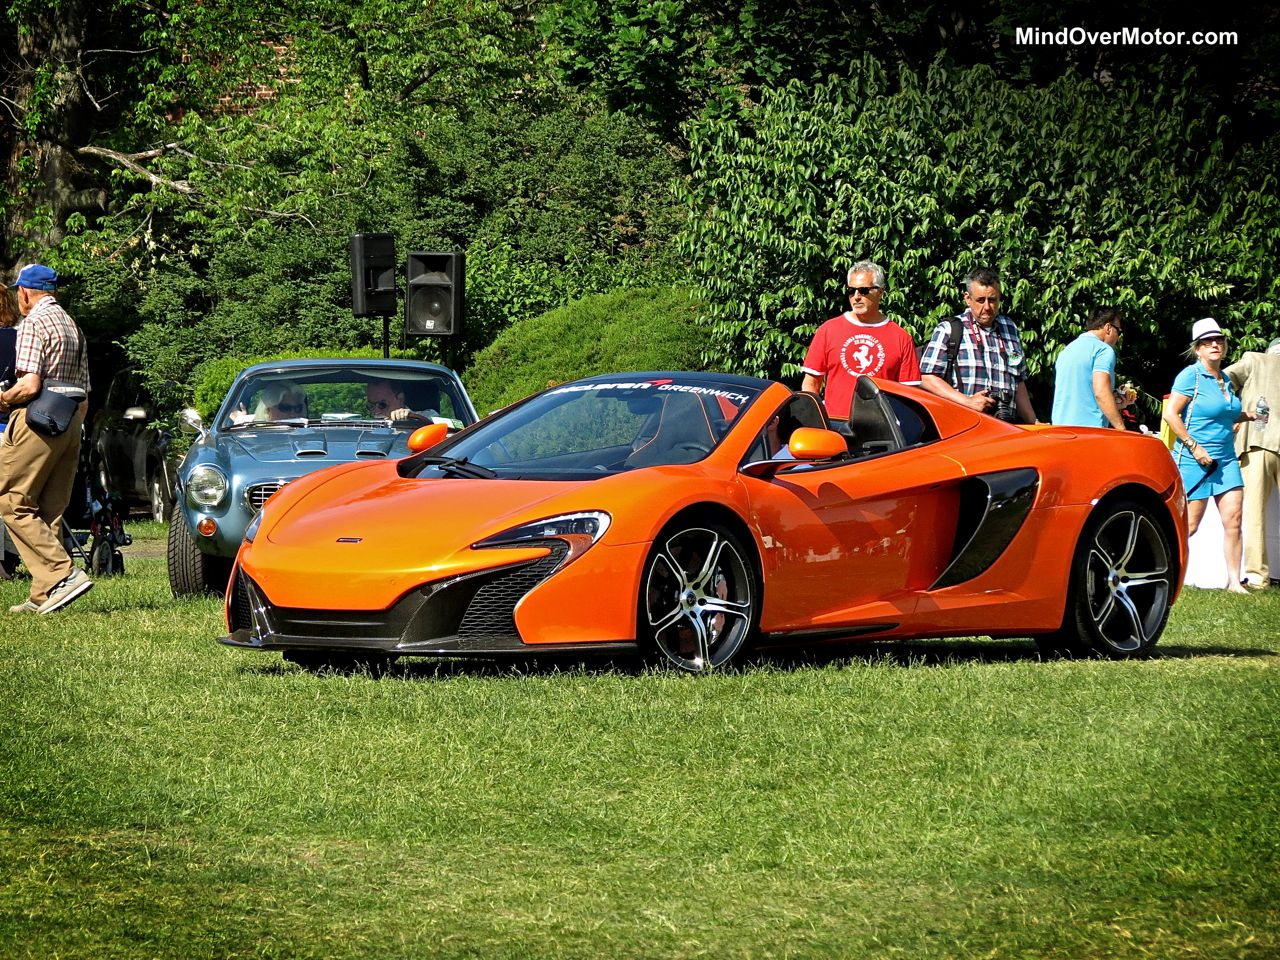 McLaren 650S at the Greenwich Concours